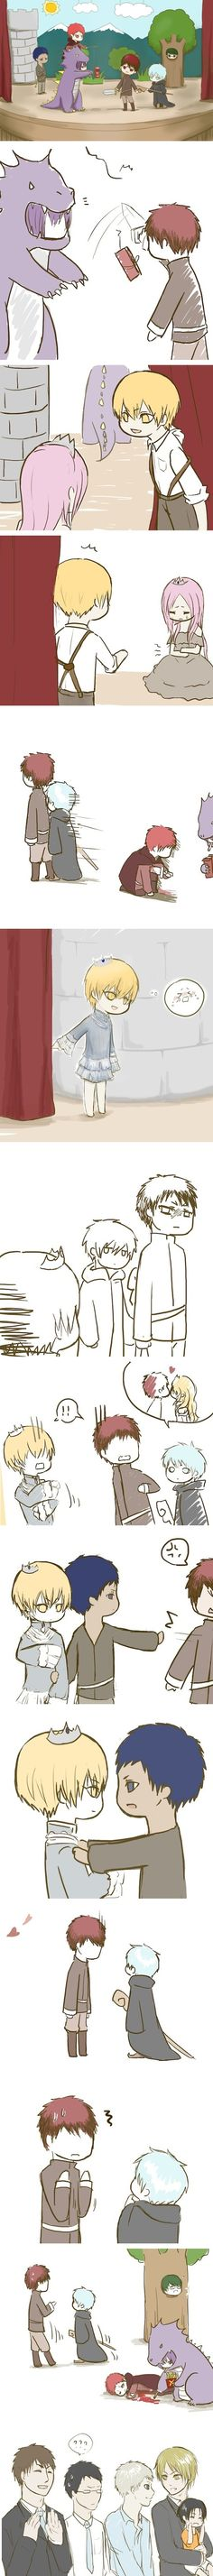 Mu-kun is dipping his french fries in Akashi's 'blood'~~ Hahhahaha he was an adorable monster~~~